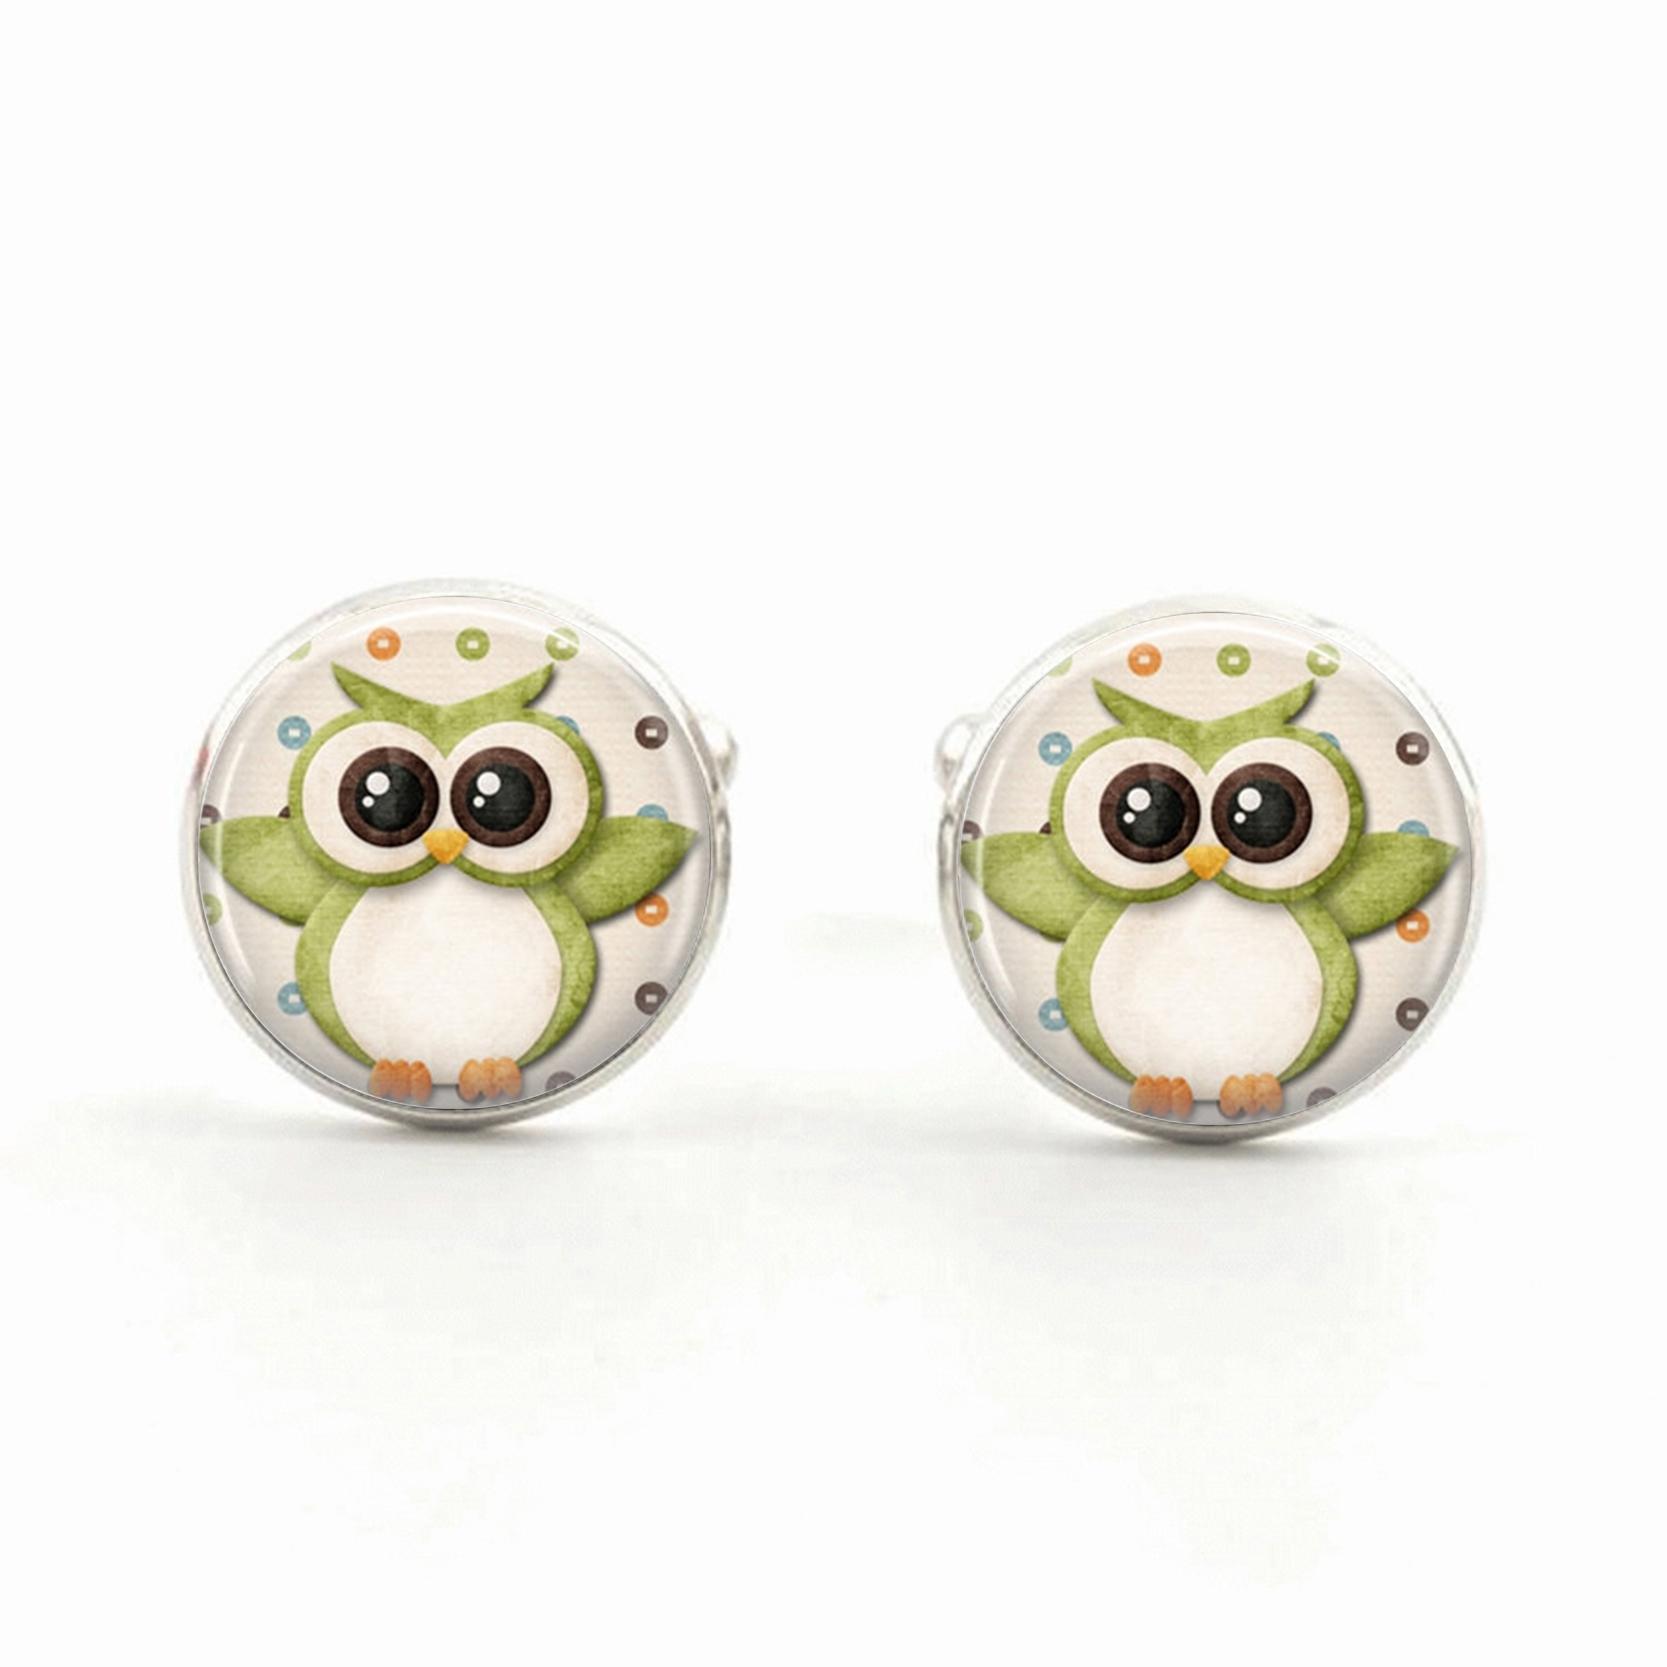 Cute Owl Jewelry Owl Cufflinks Car Toon Owl Glass Pendant Owl Glass Cabochon Cufflinks Christmas Gift for Children for Men